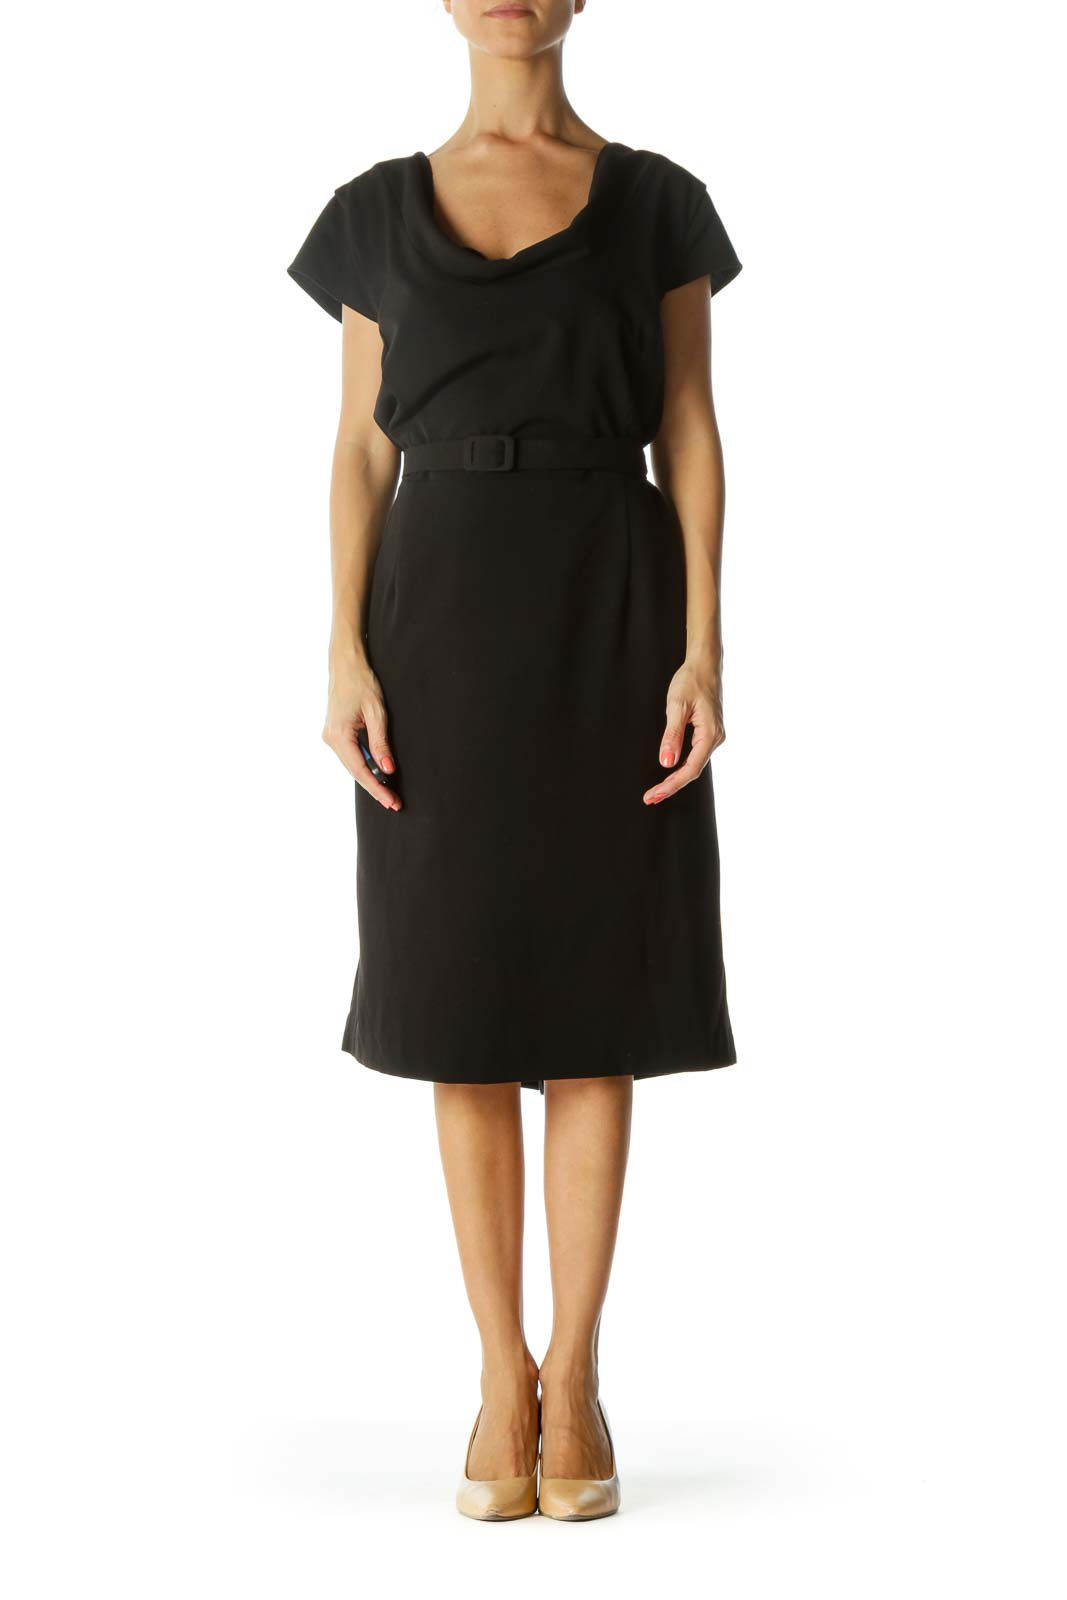 Black Cowl Neck Cap-Sleeves Belted Cinched-Waist Dress